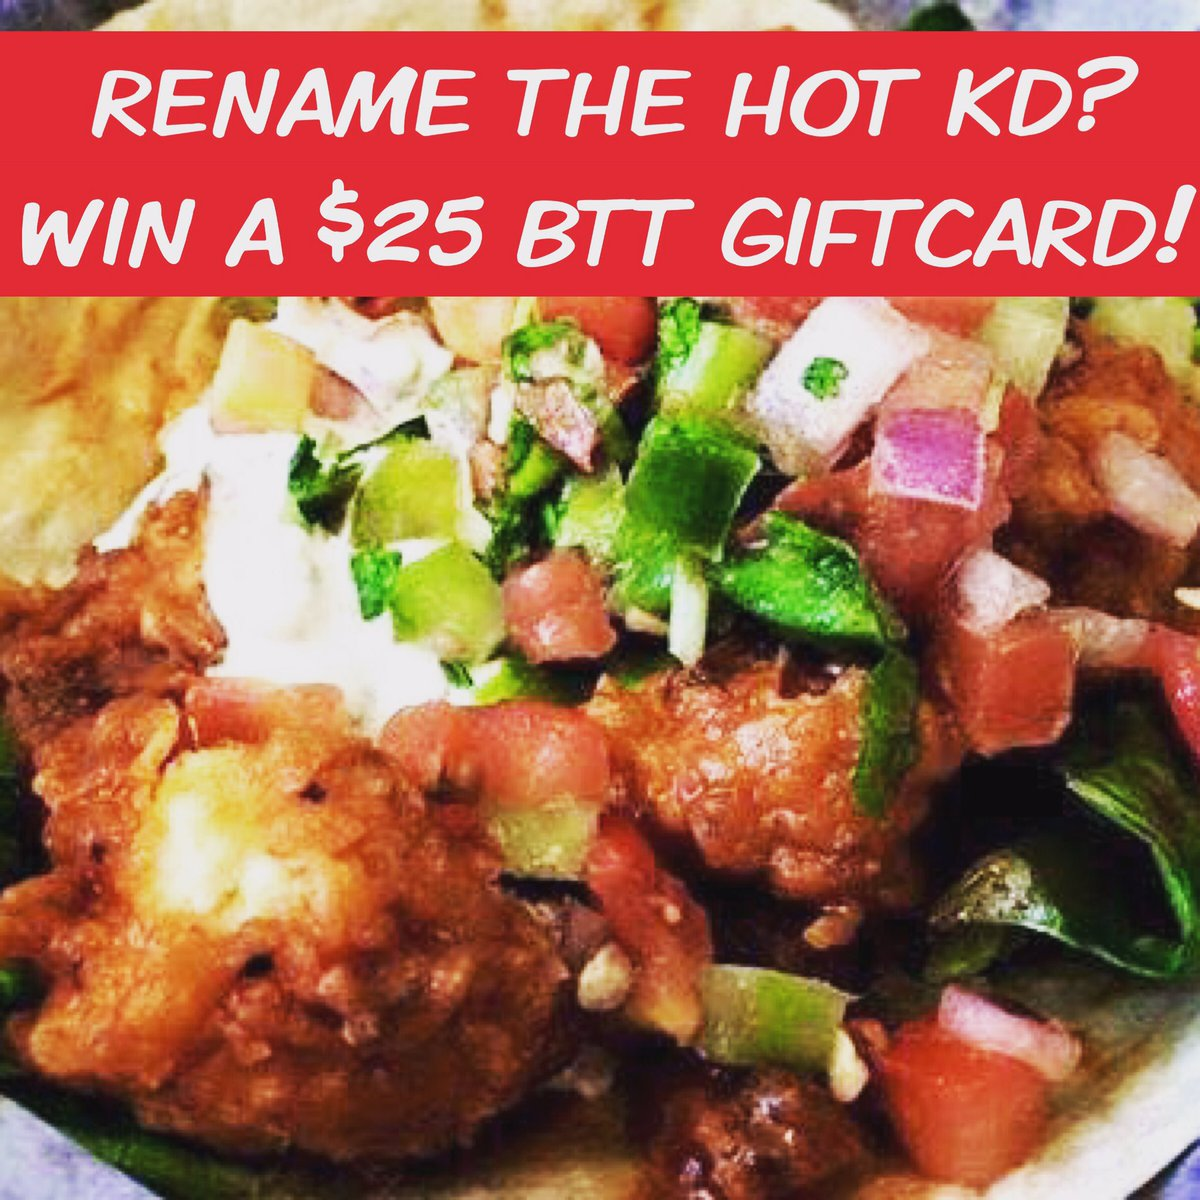 Help us rename the Hot KD! Winner gets a $25 BTT gift card! RETWEET to your friends too! #thunder #btt #uptown23rd https://t.co/yq7frN5zIA